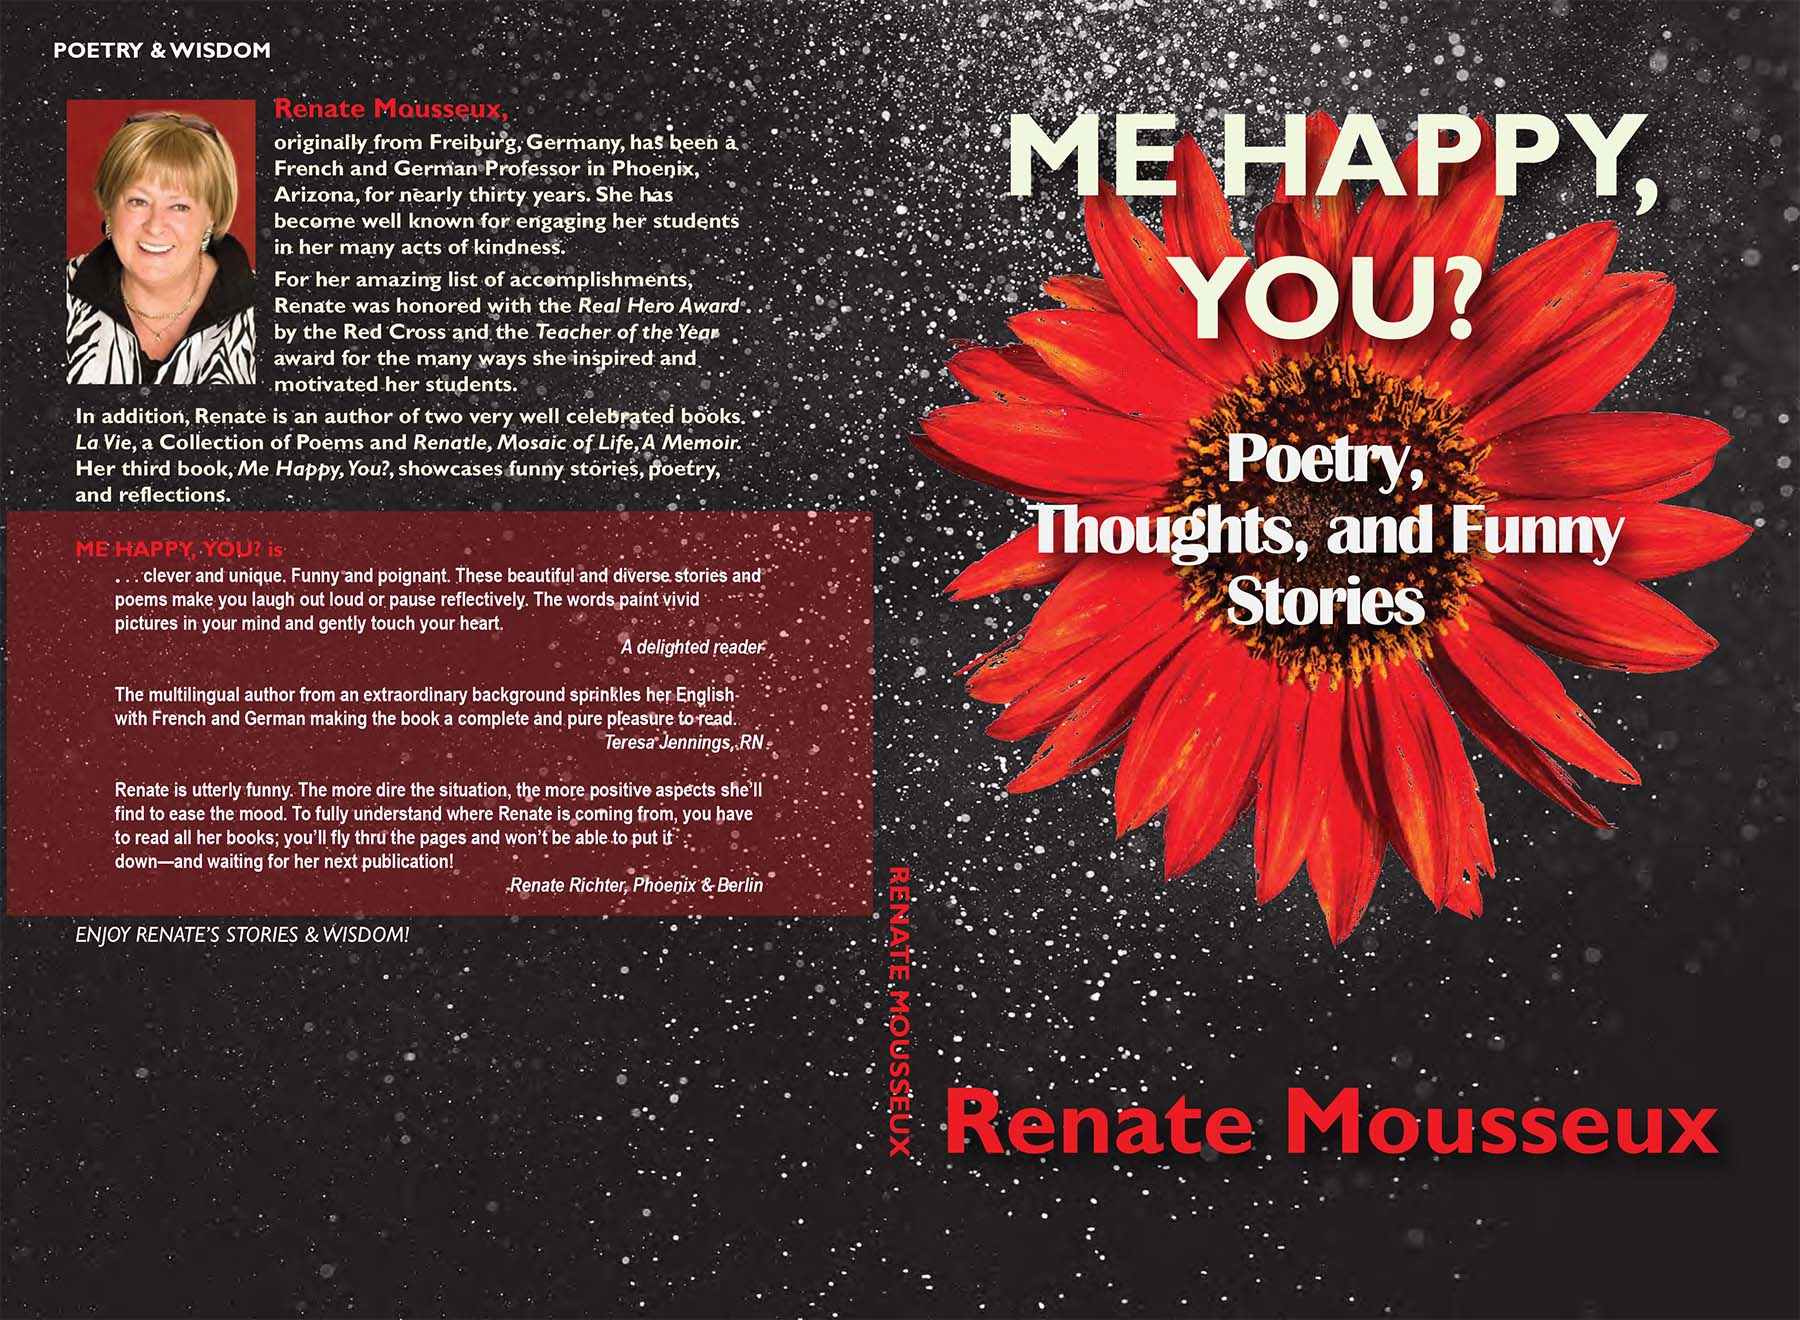 Renate Mousseux funny stories and poems cover